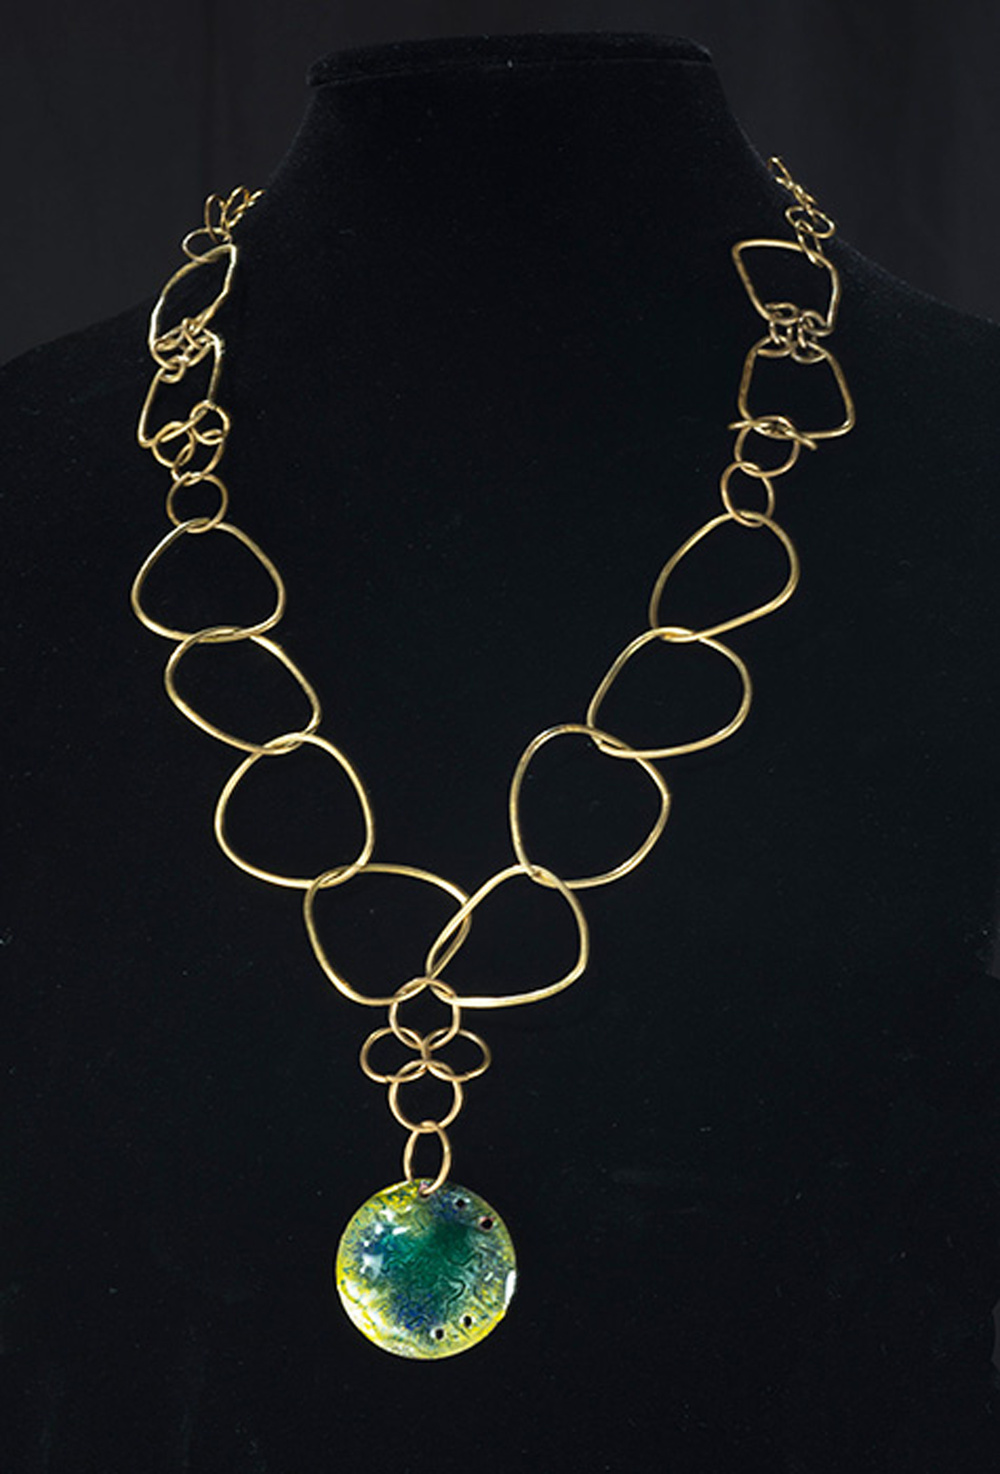 Aegean Necklace, 2013